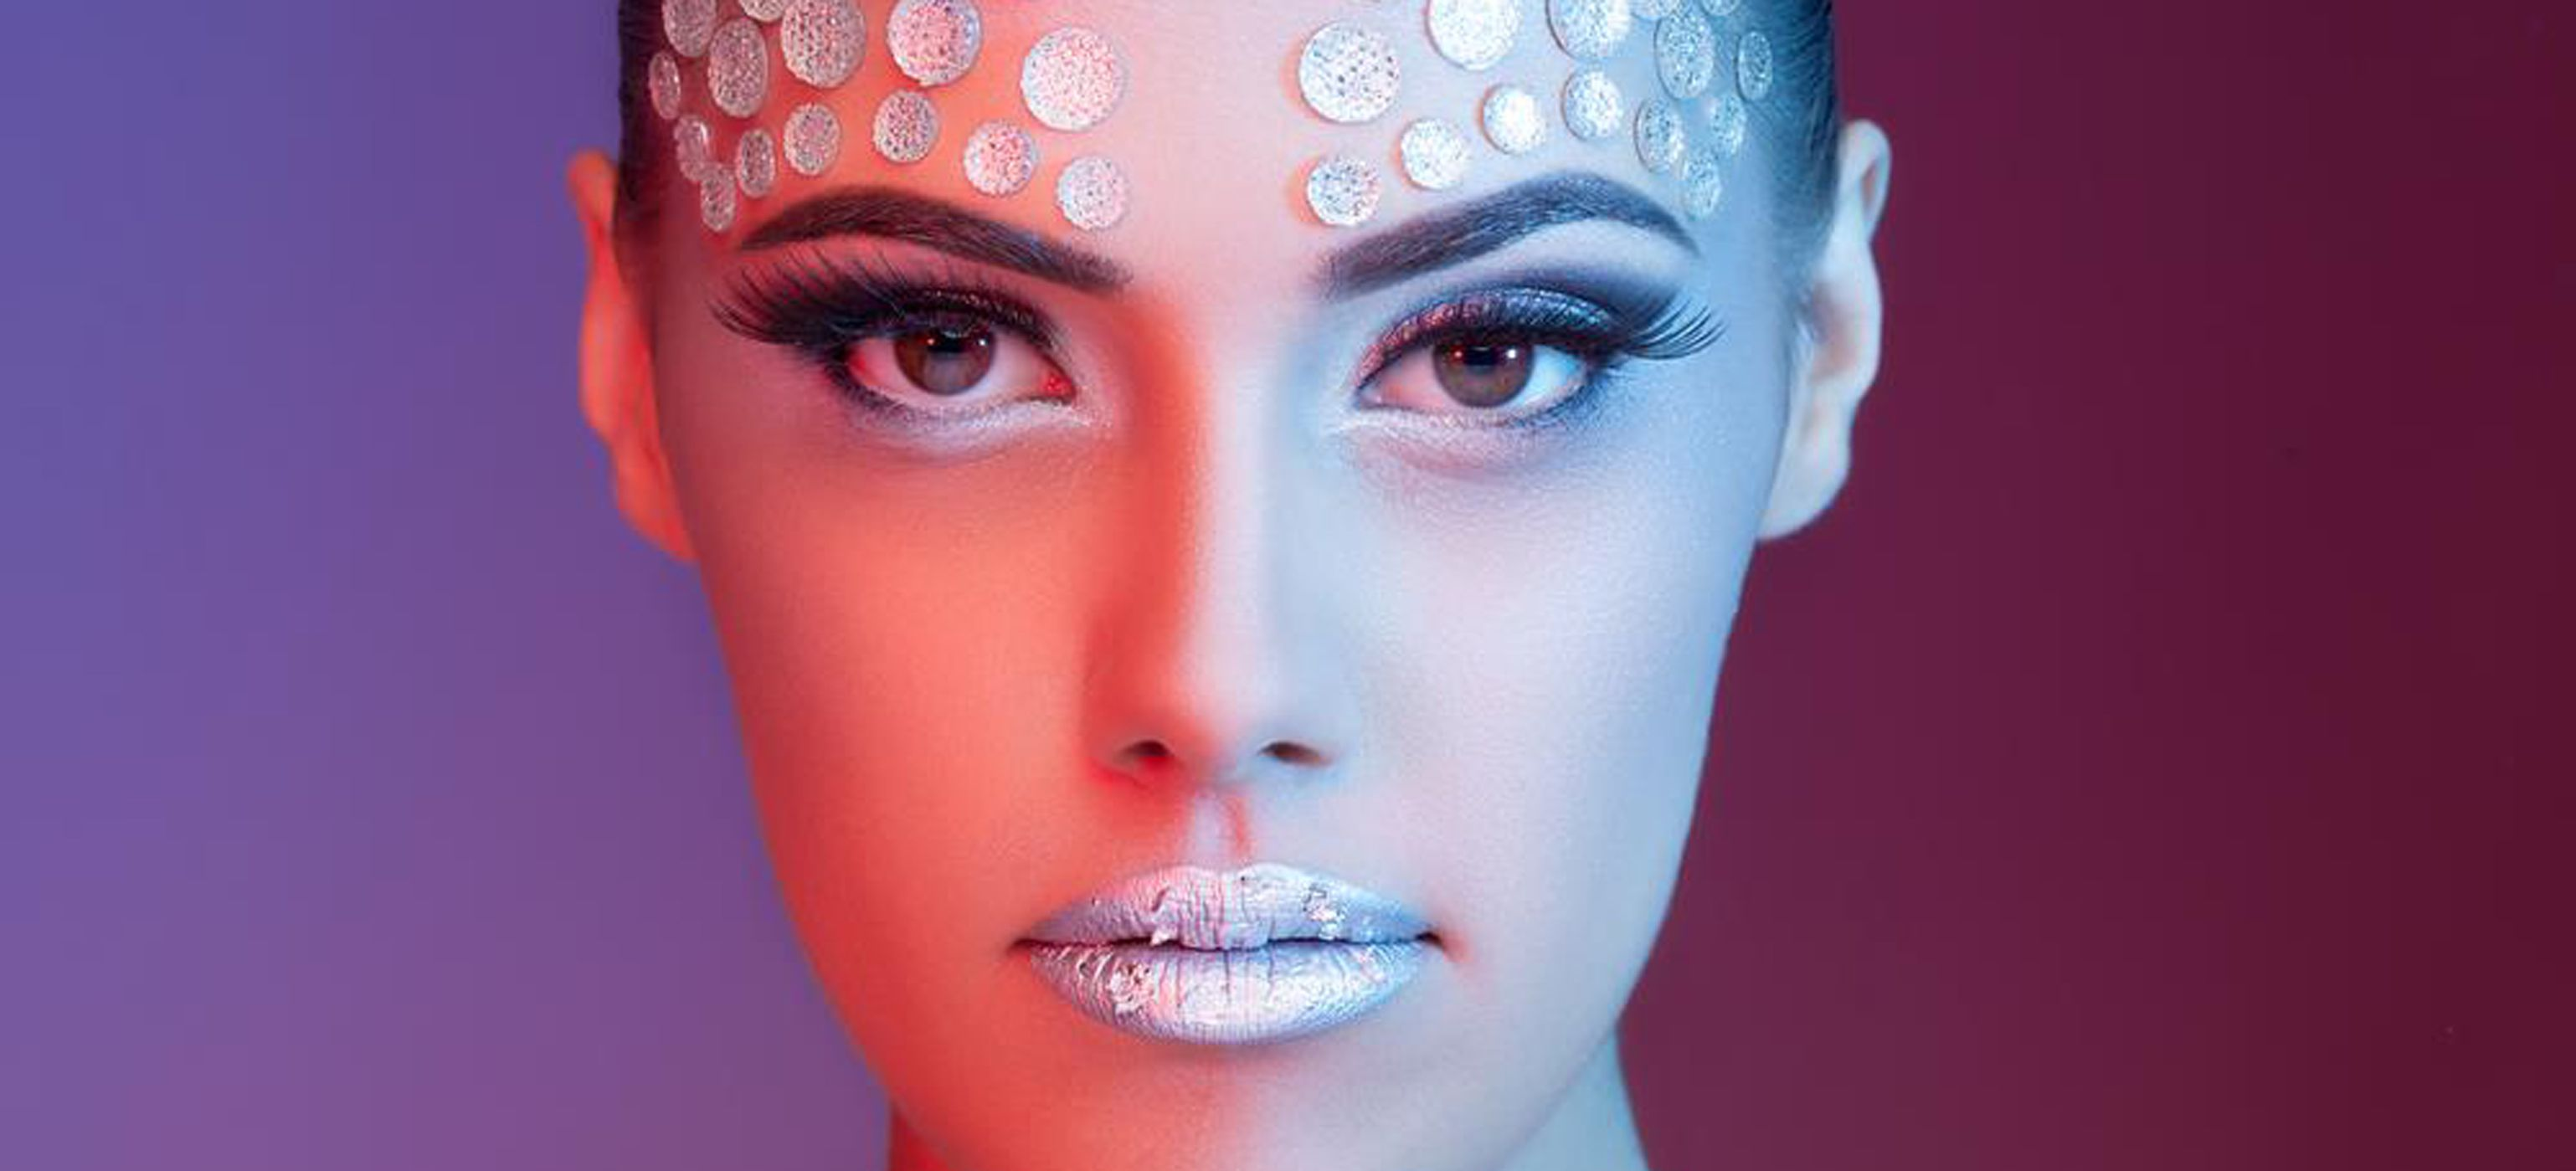 Glamour and highend photo retouch